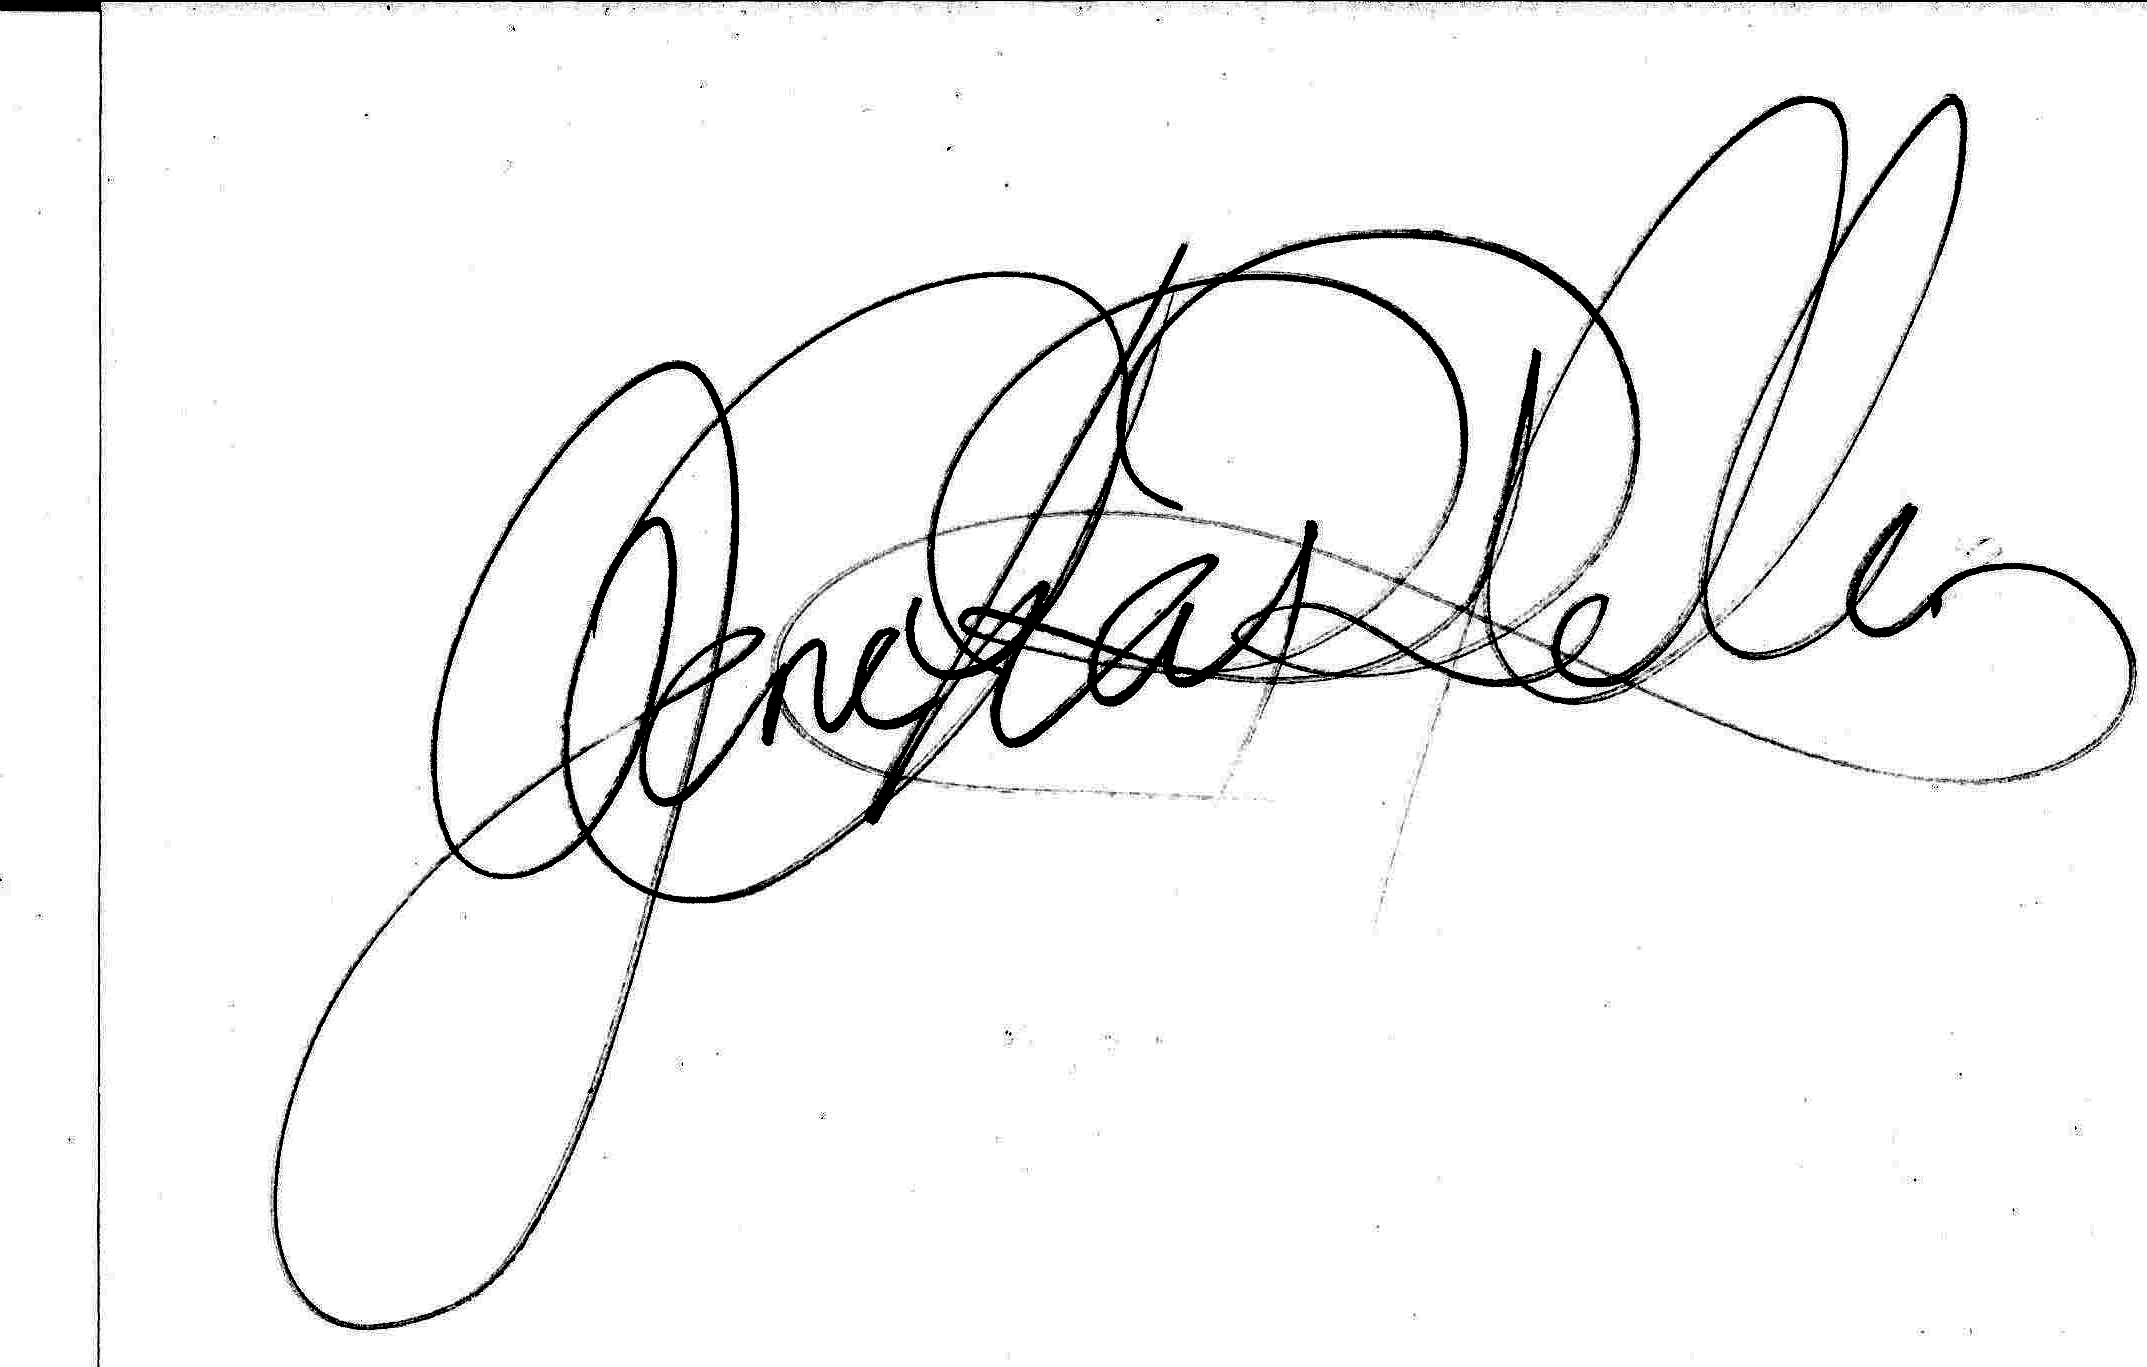 jane chappelle Signature